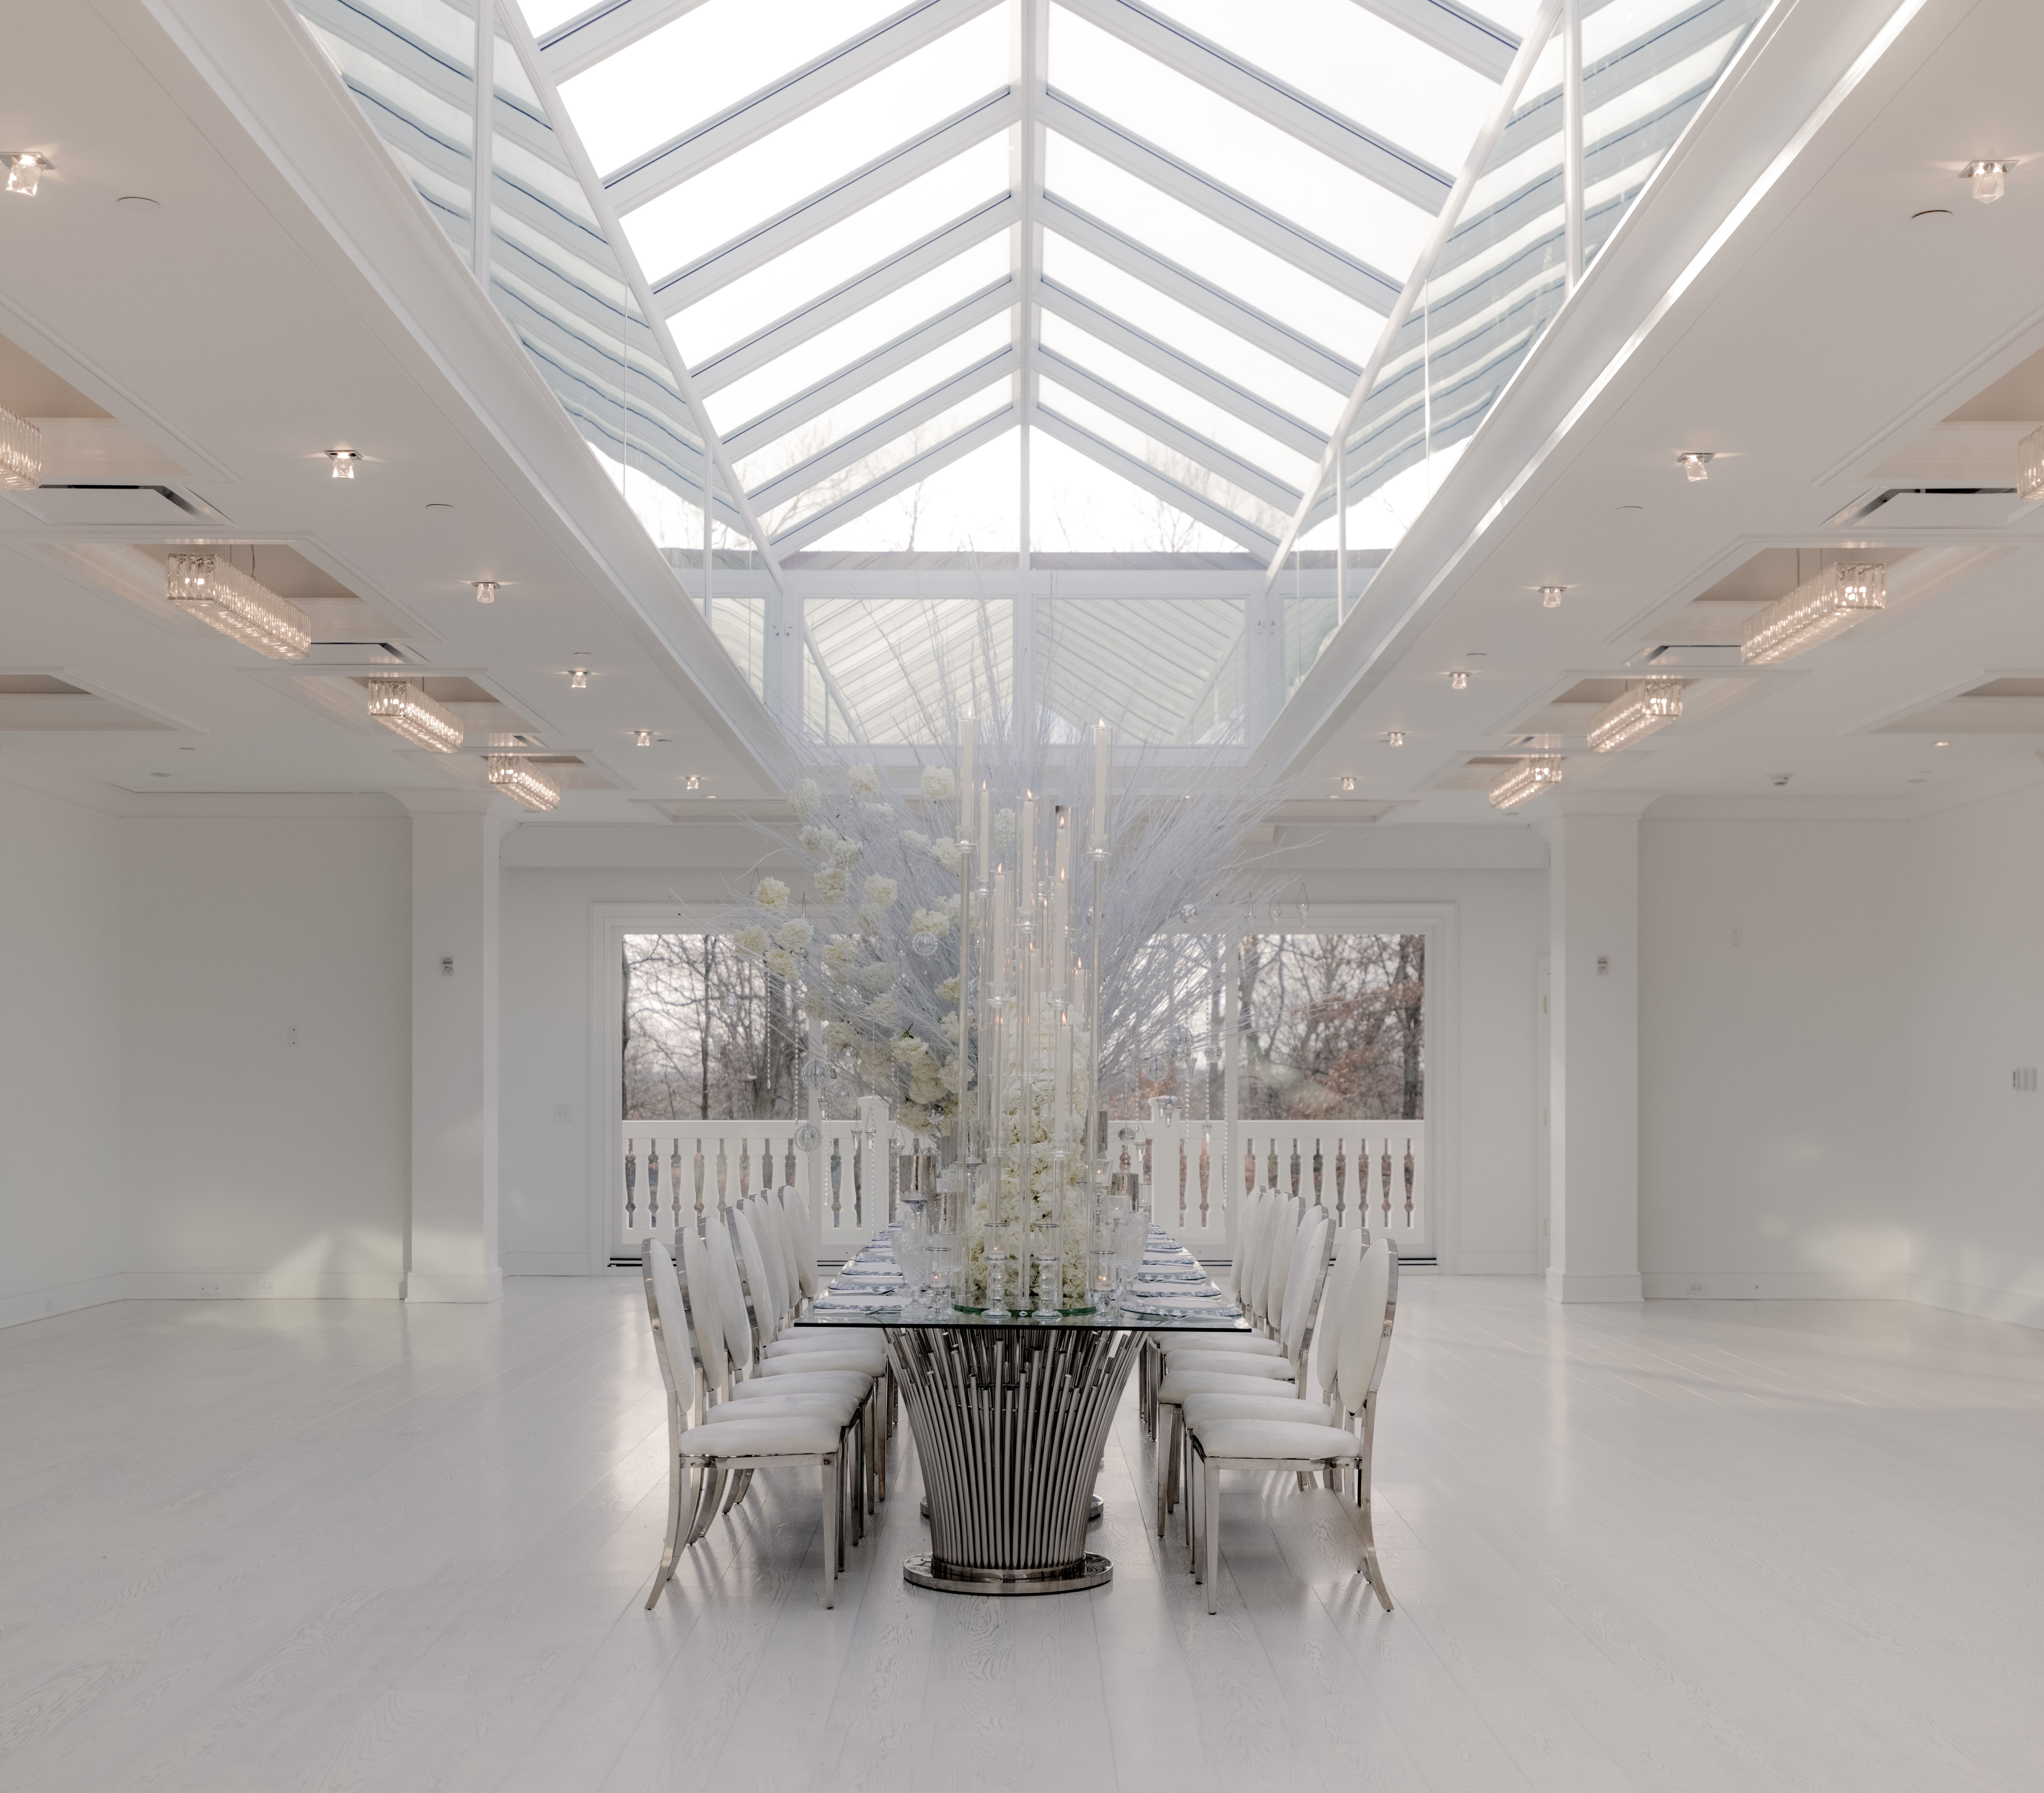 A beautiful table setting in the center of a natural lit Atrium at The Crystal Plaza wedding venue